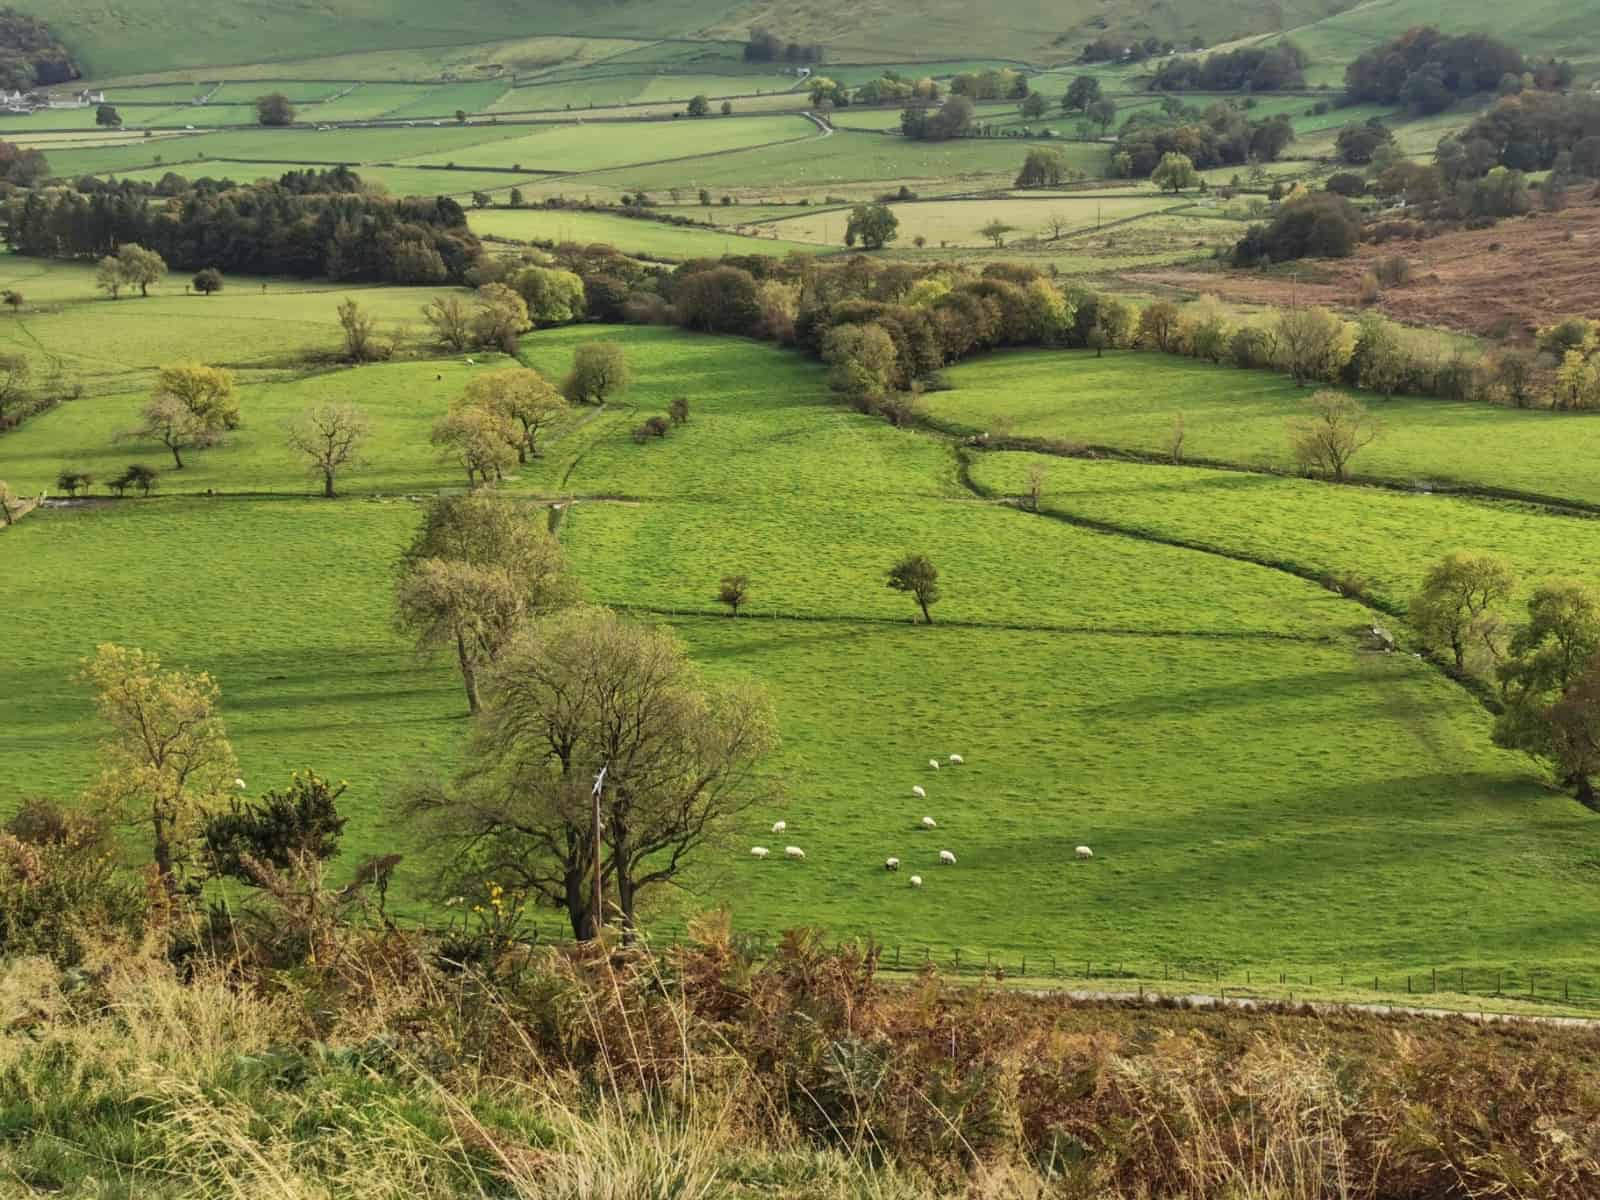 The Wanderlust Within - Green hills of Castleton in the Peak District in England